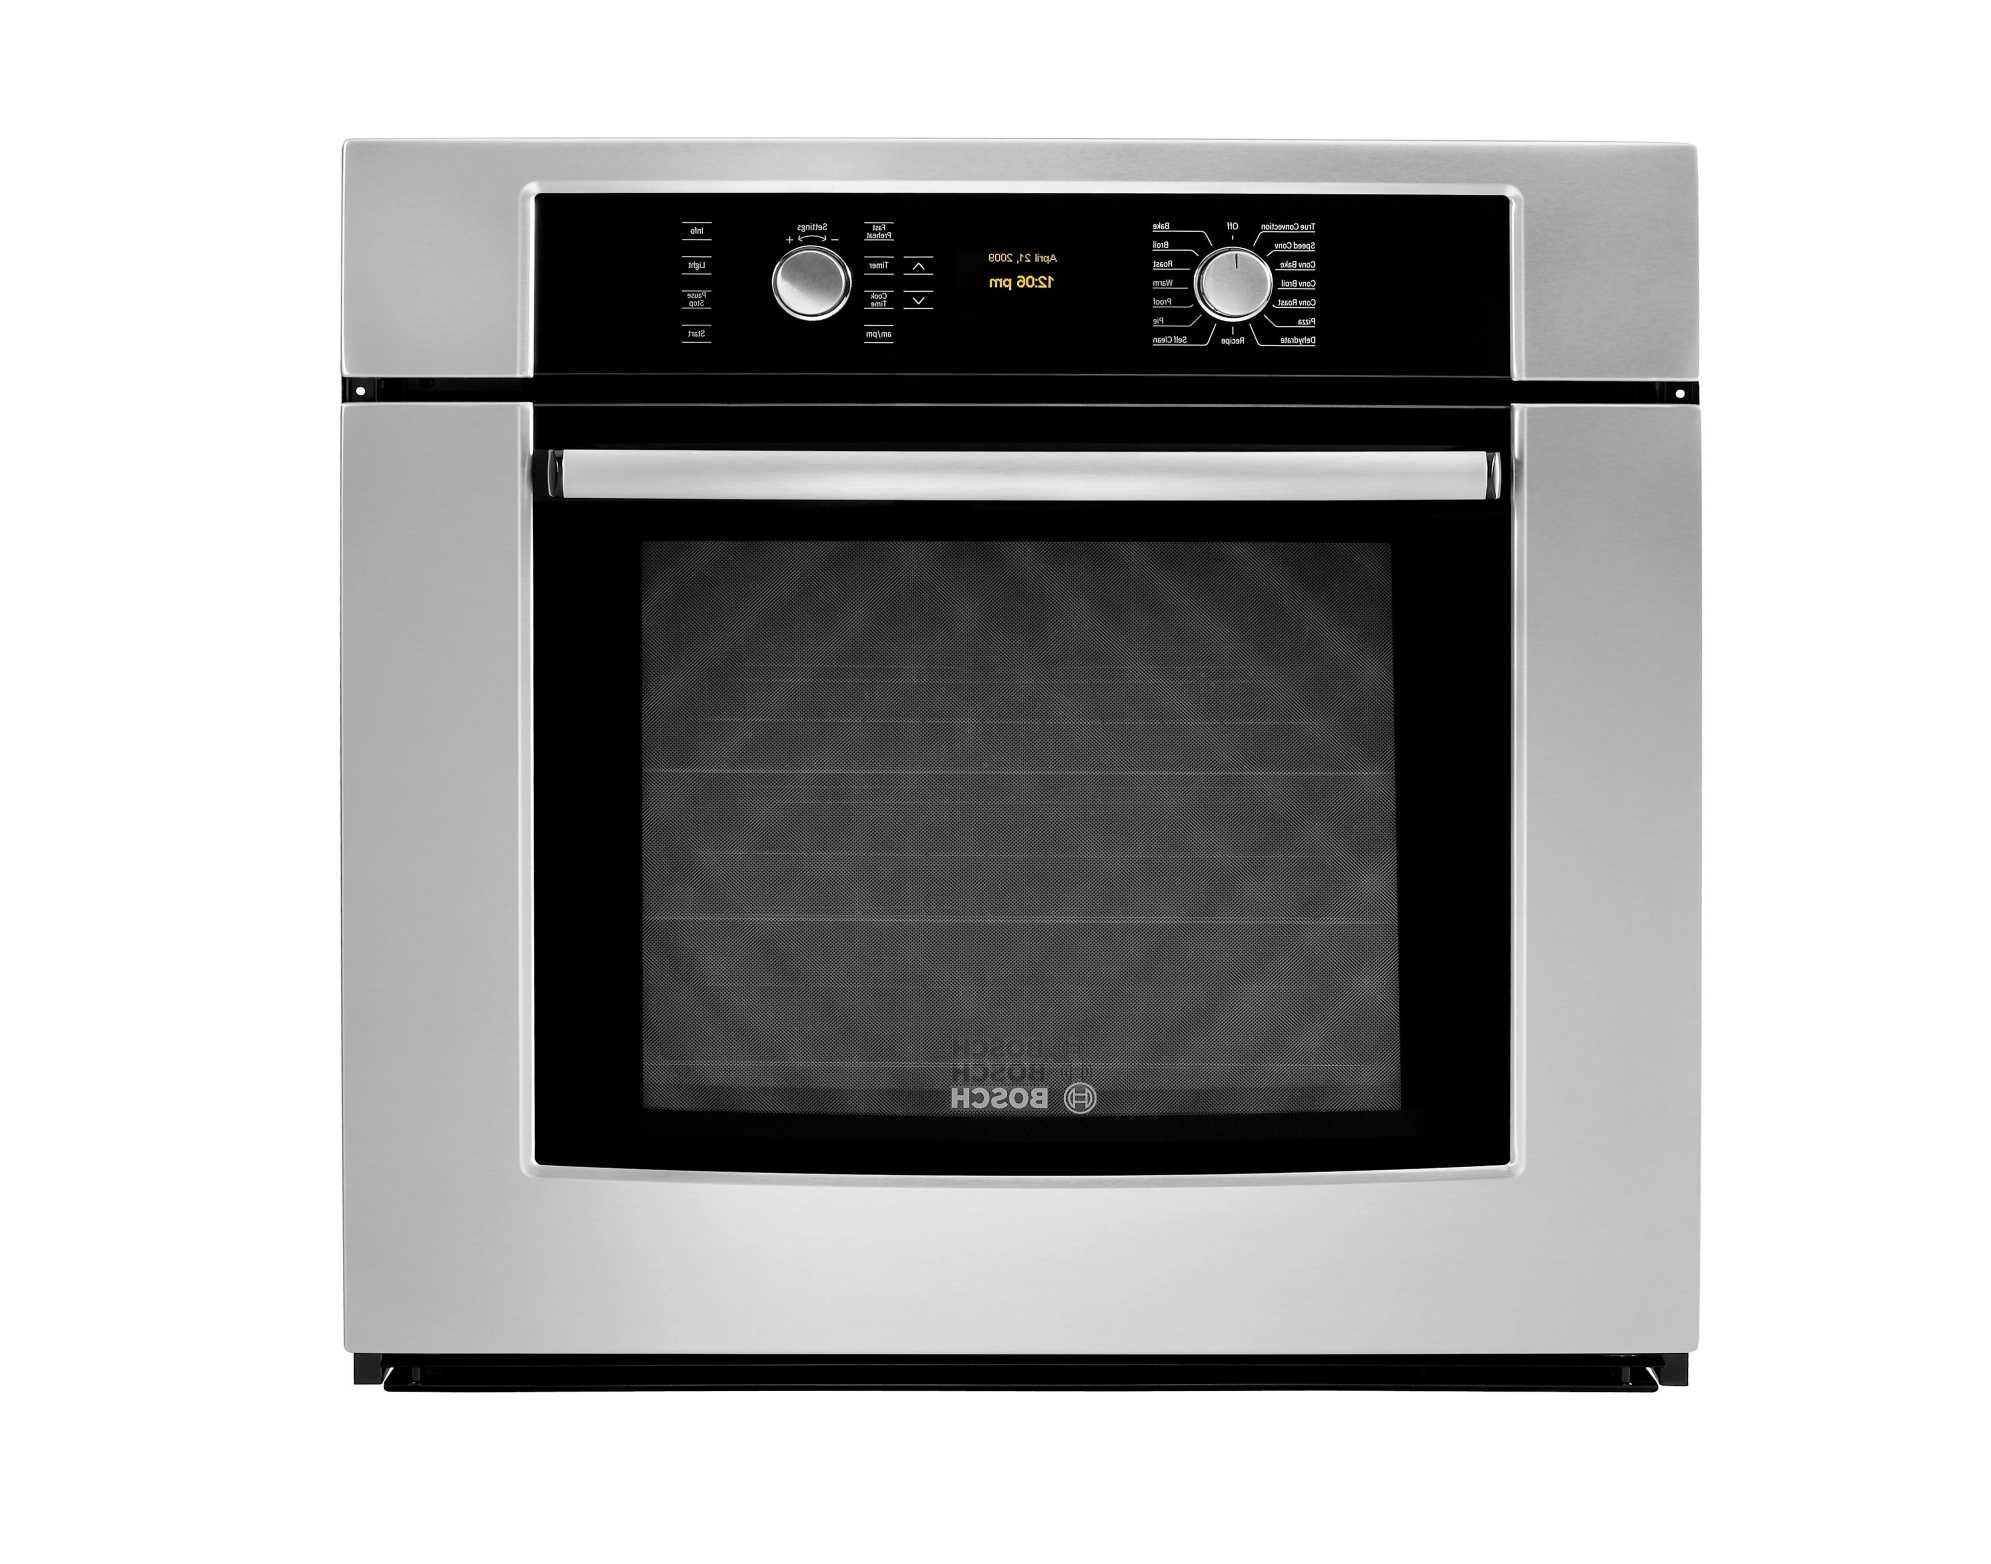 Bosch Ct227n Electric Wall Oven Timer Kitch Cooktop Range